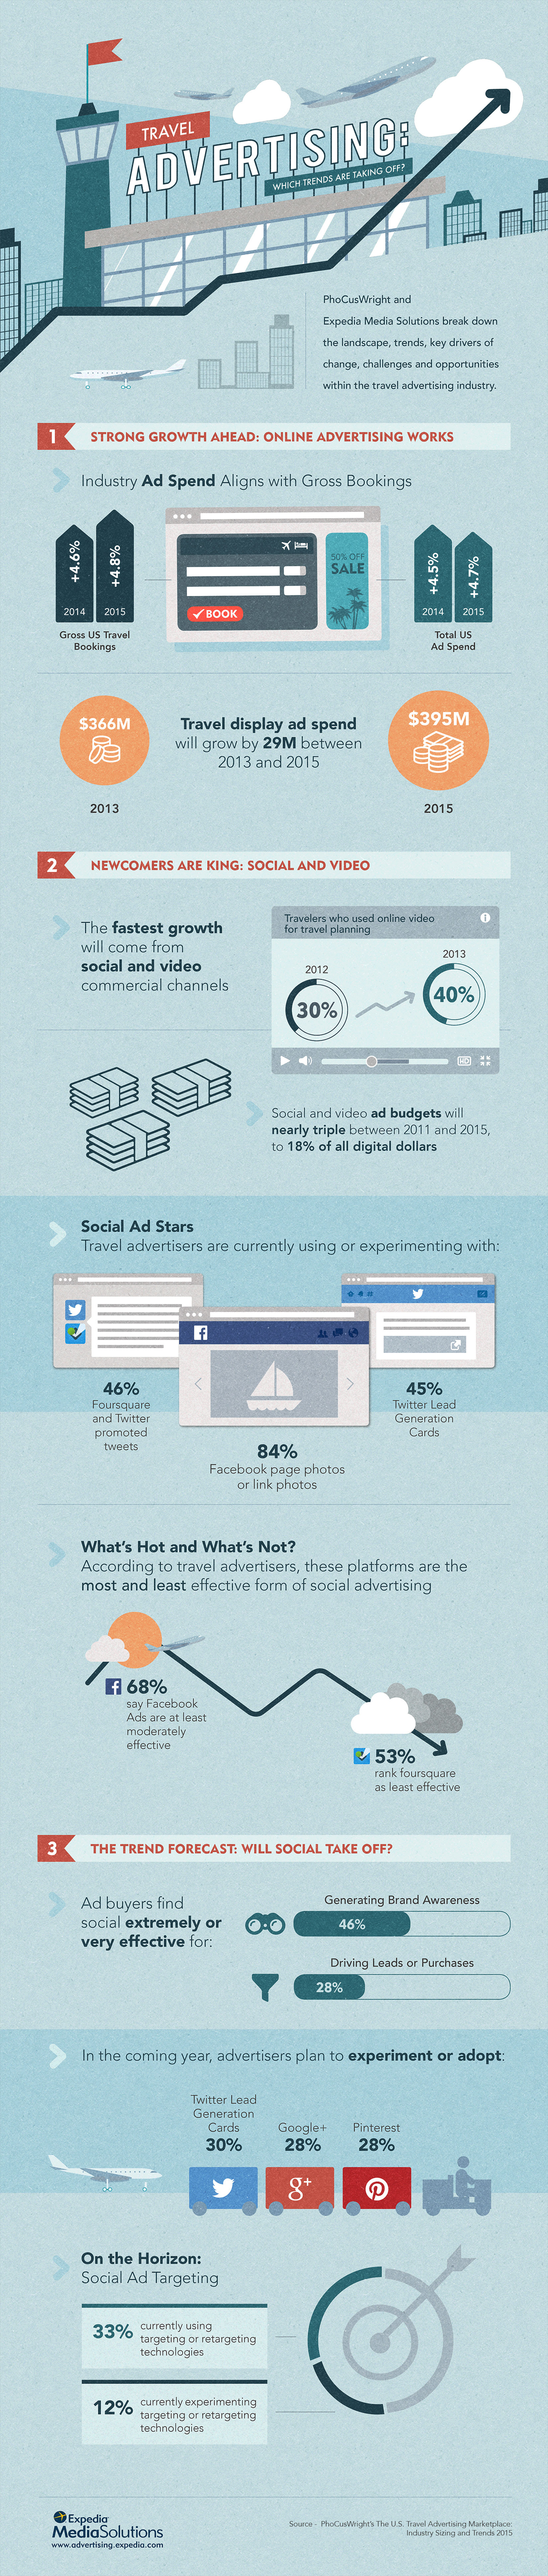 Travel Advertising Trends 2015 Infographic